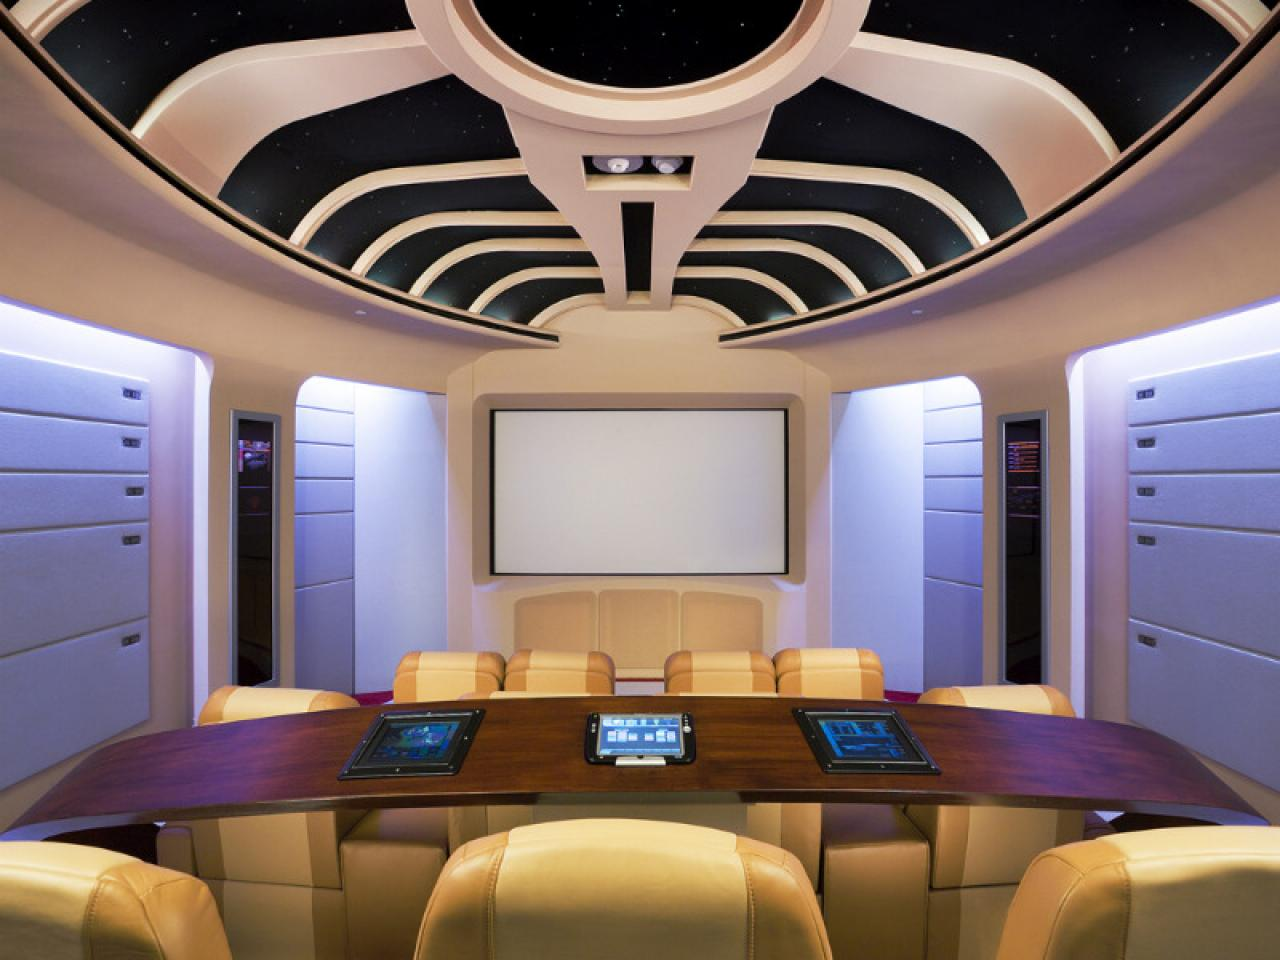 10 unique home theater themes home remodeling ideas for basements home theaters more hgtv - Home cinema design ideas ...